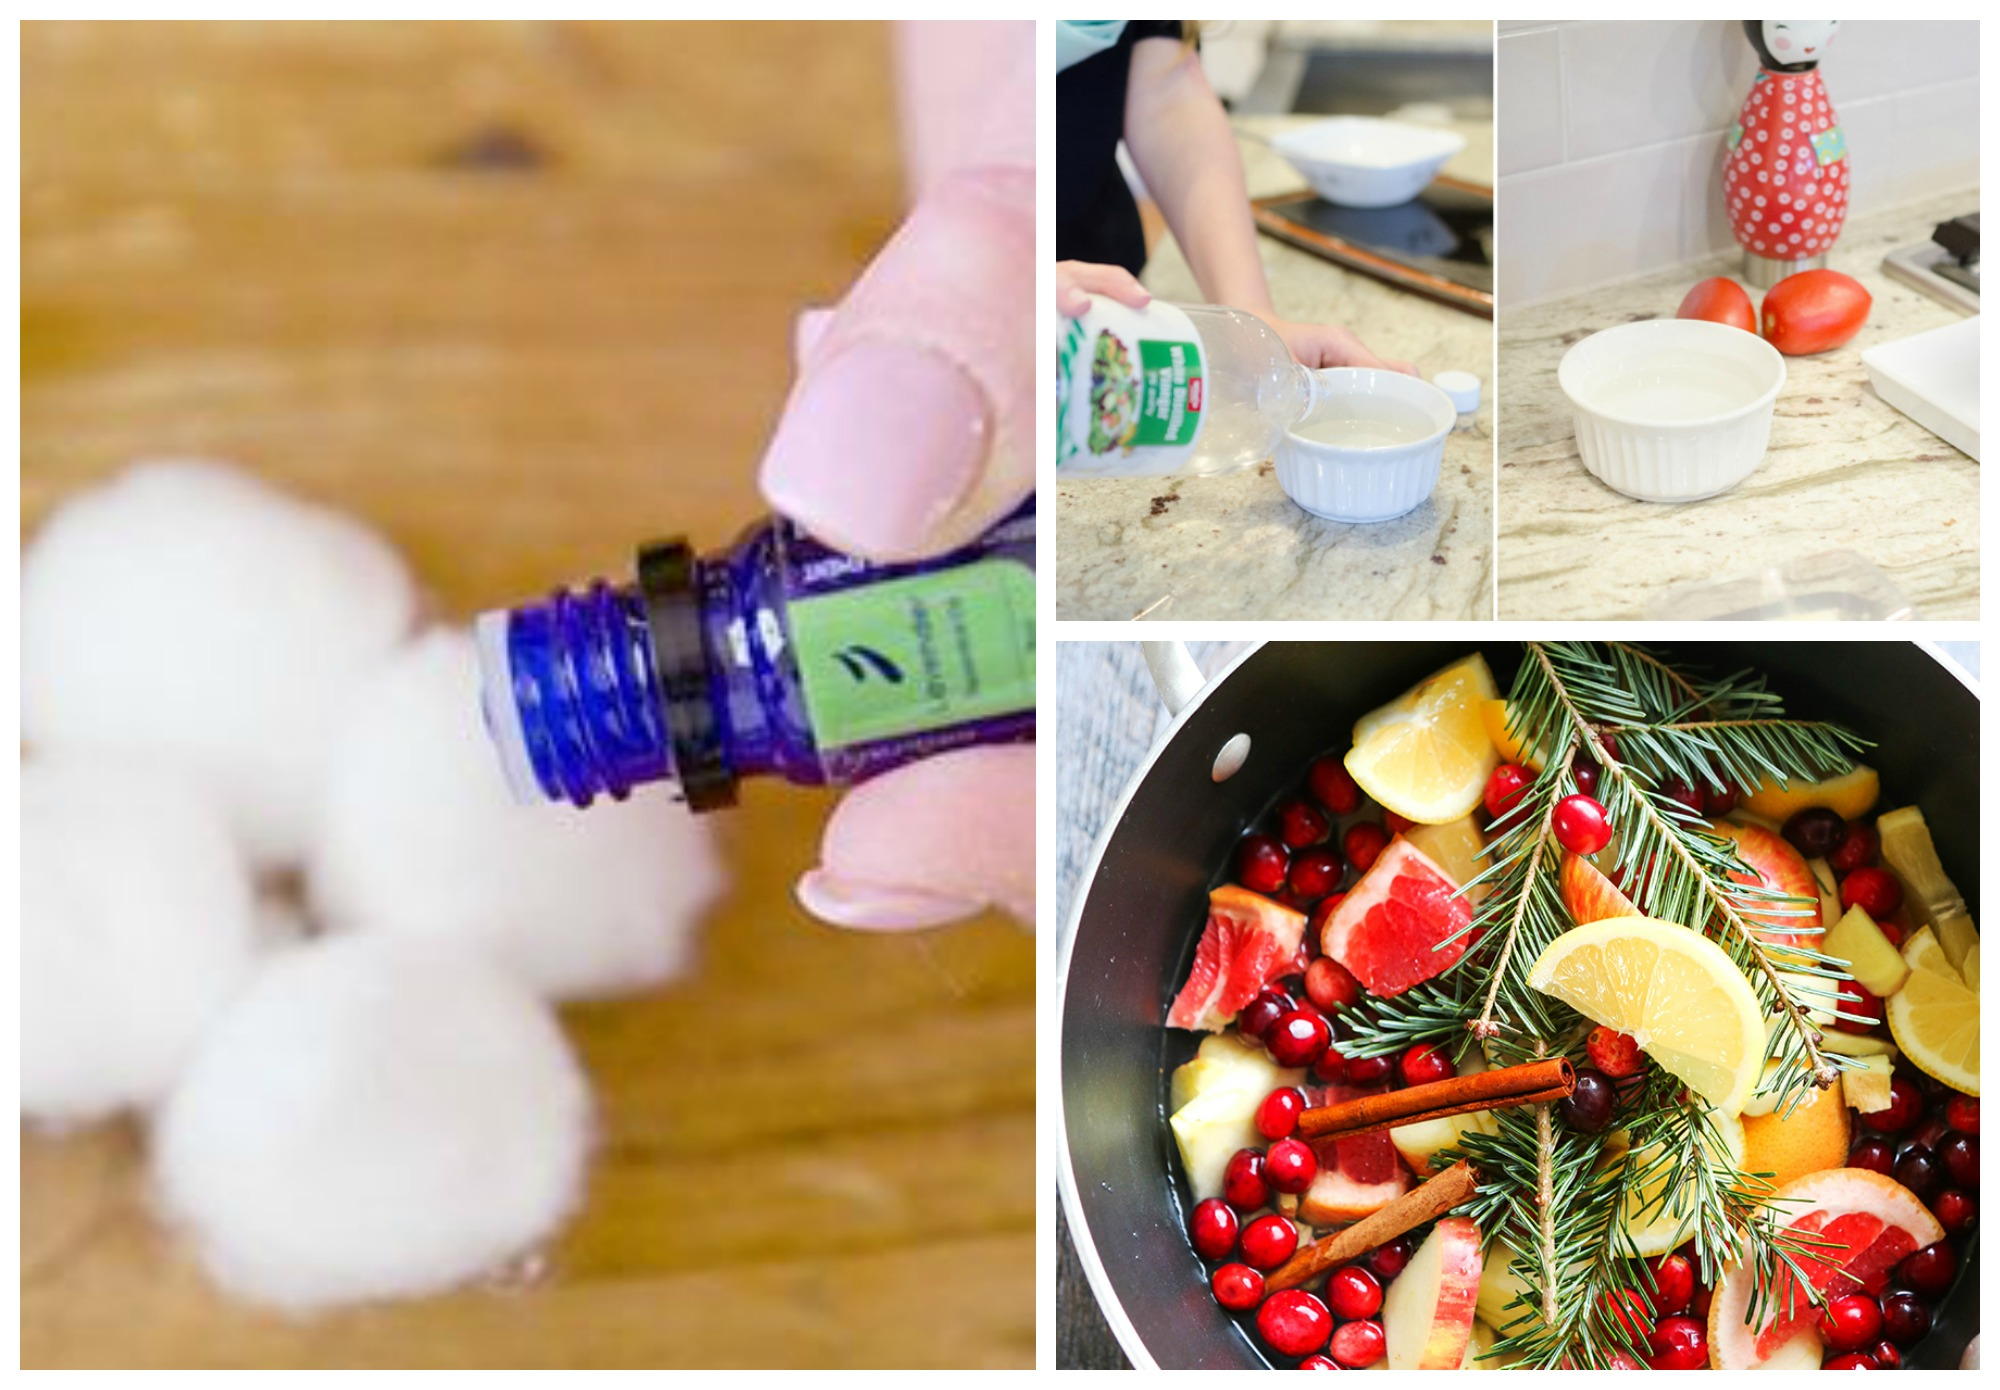 8 weird but brilliant hacks to make your house smell like for What makes house smell good